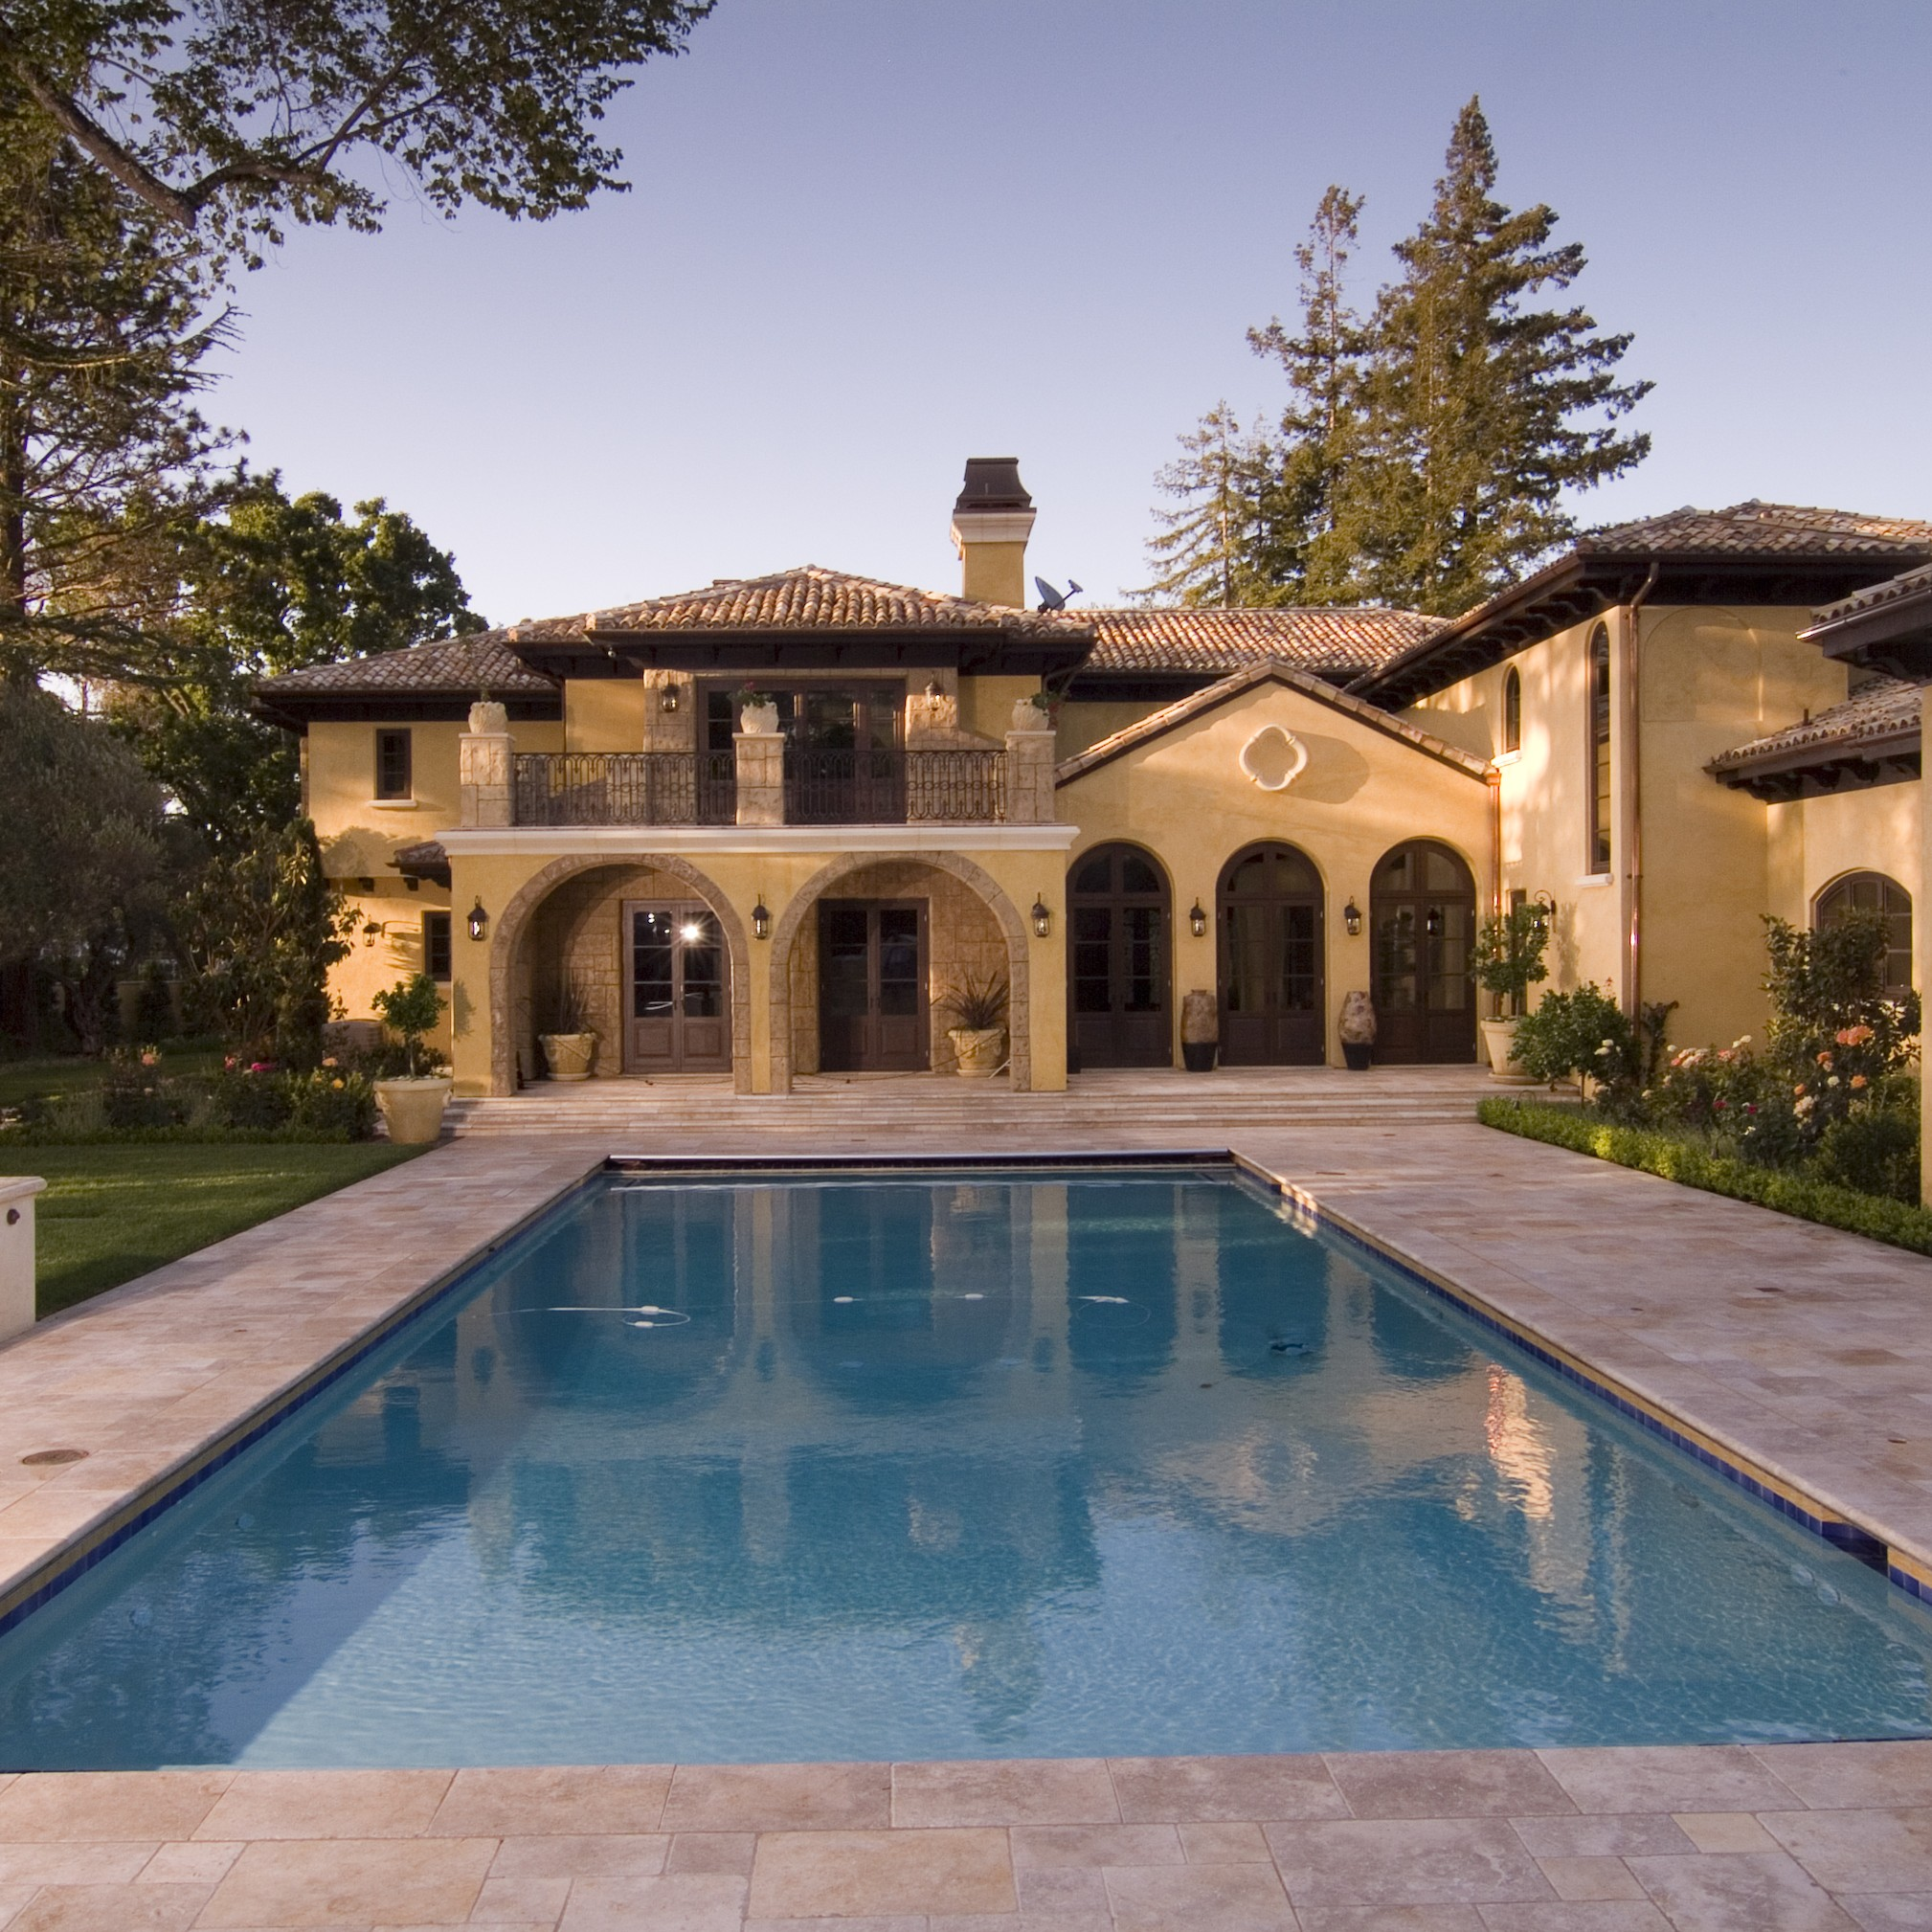 House projects mediterranean style